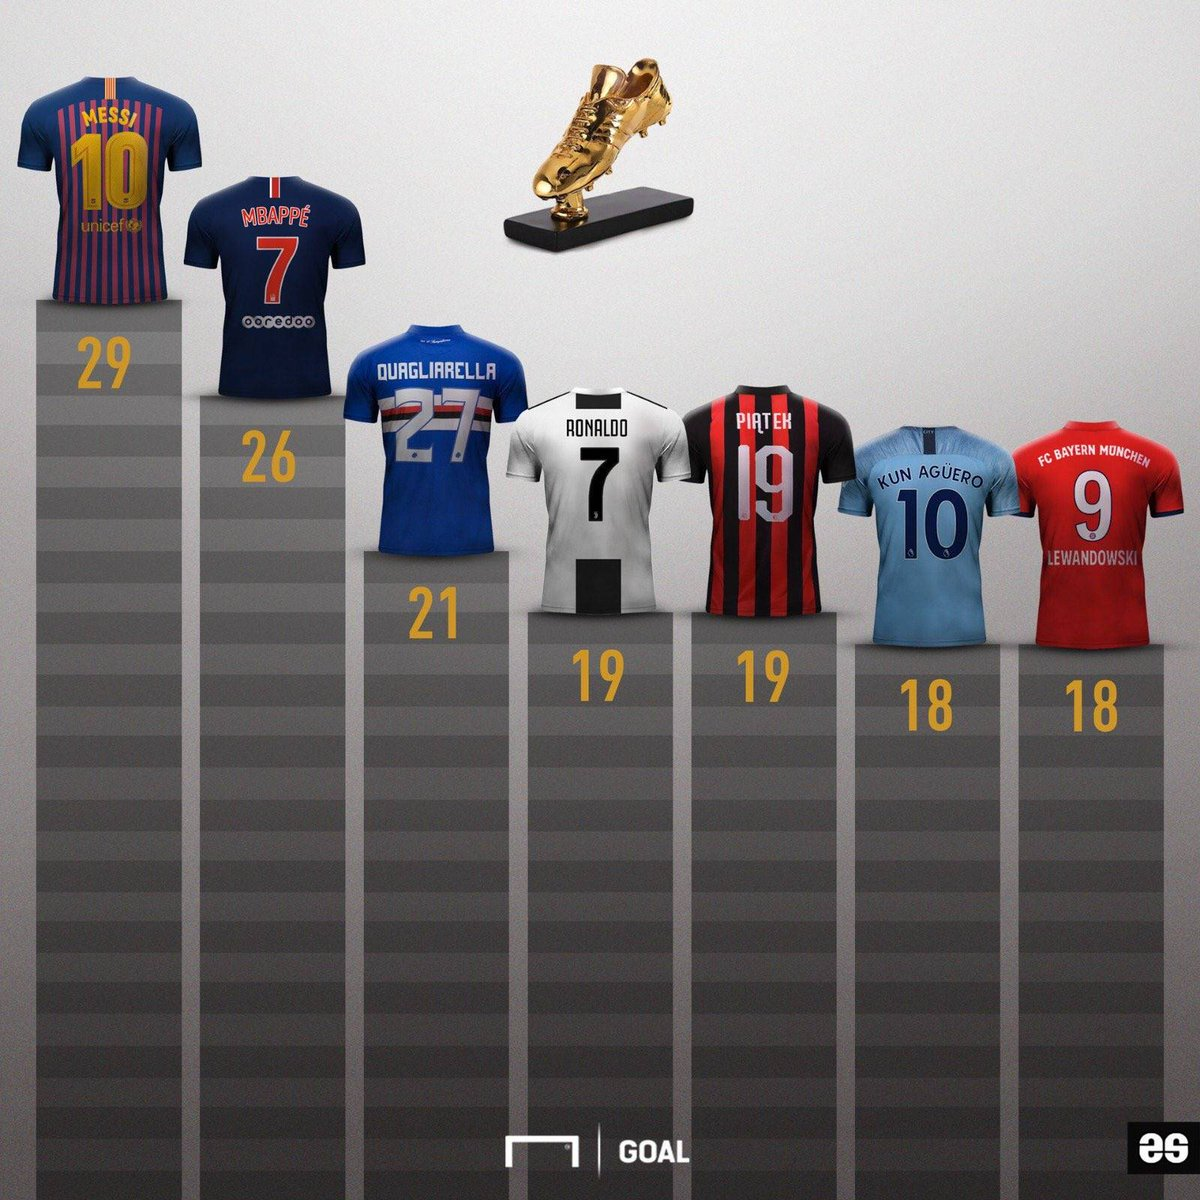 📊 [GOAL] | Golden Boot race, Messi in the lead